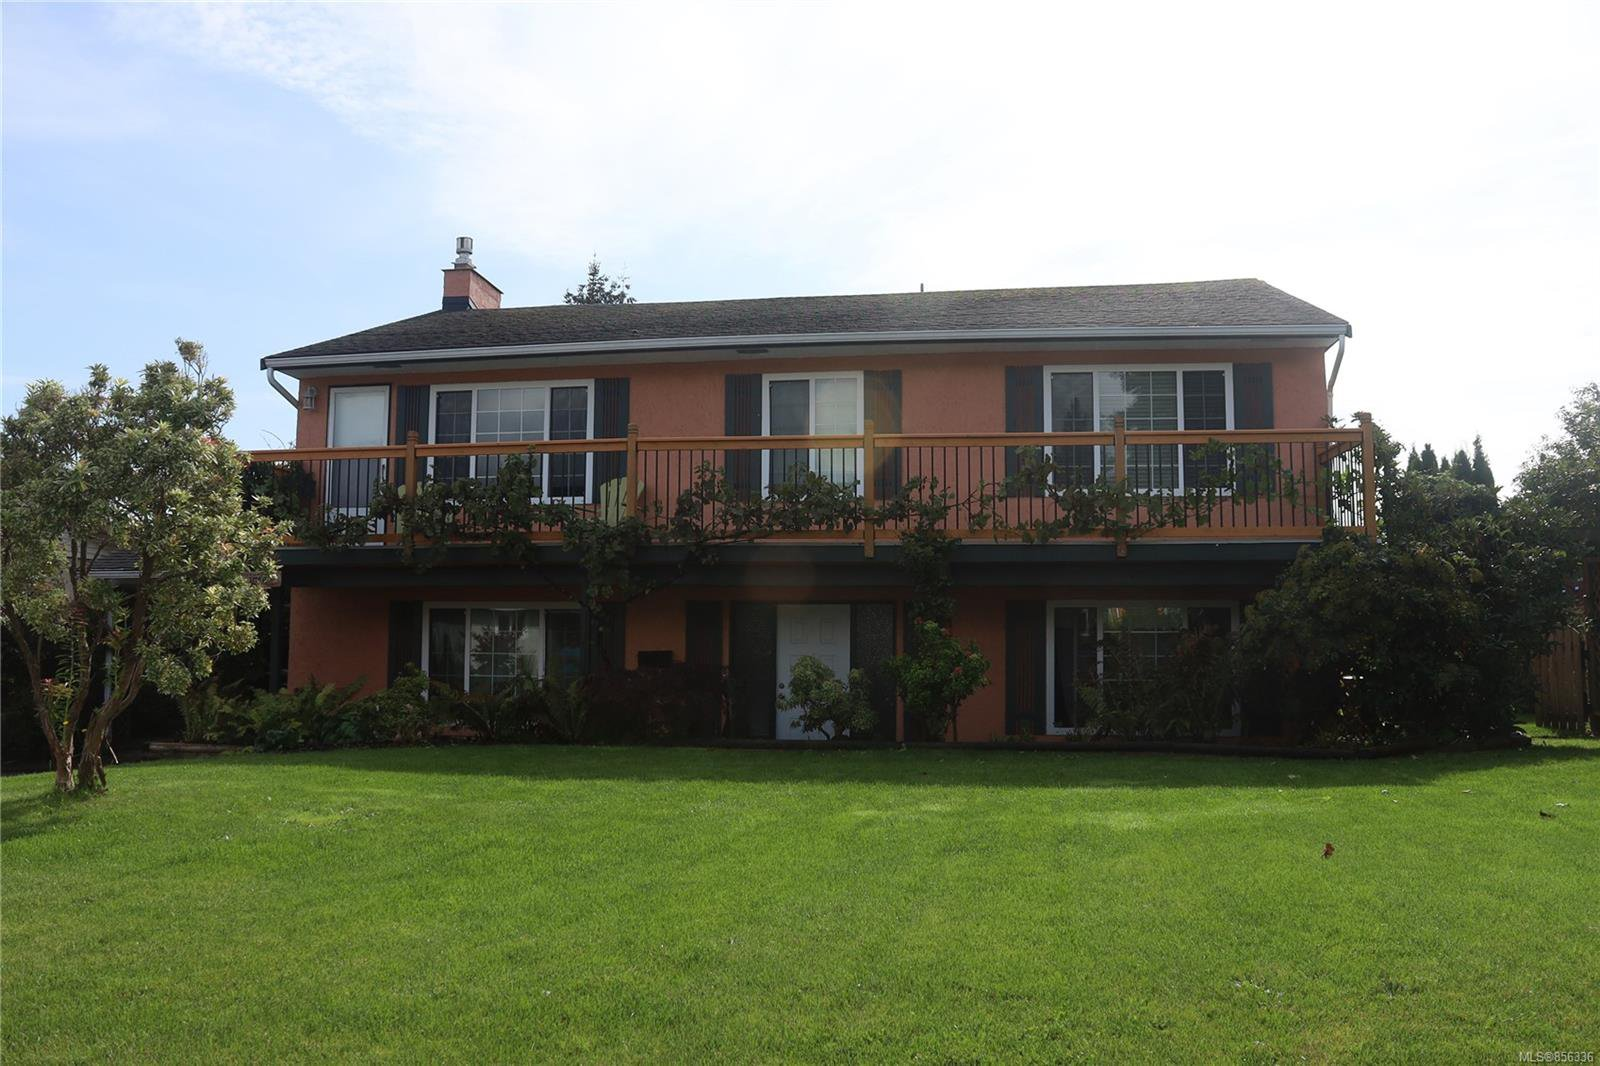 Main Photo: 640 19th St in : CV Courtenay City House for sale (Comox Valley)  : MLS®# 856336